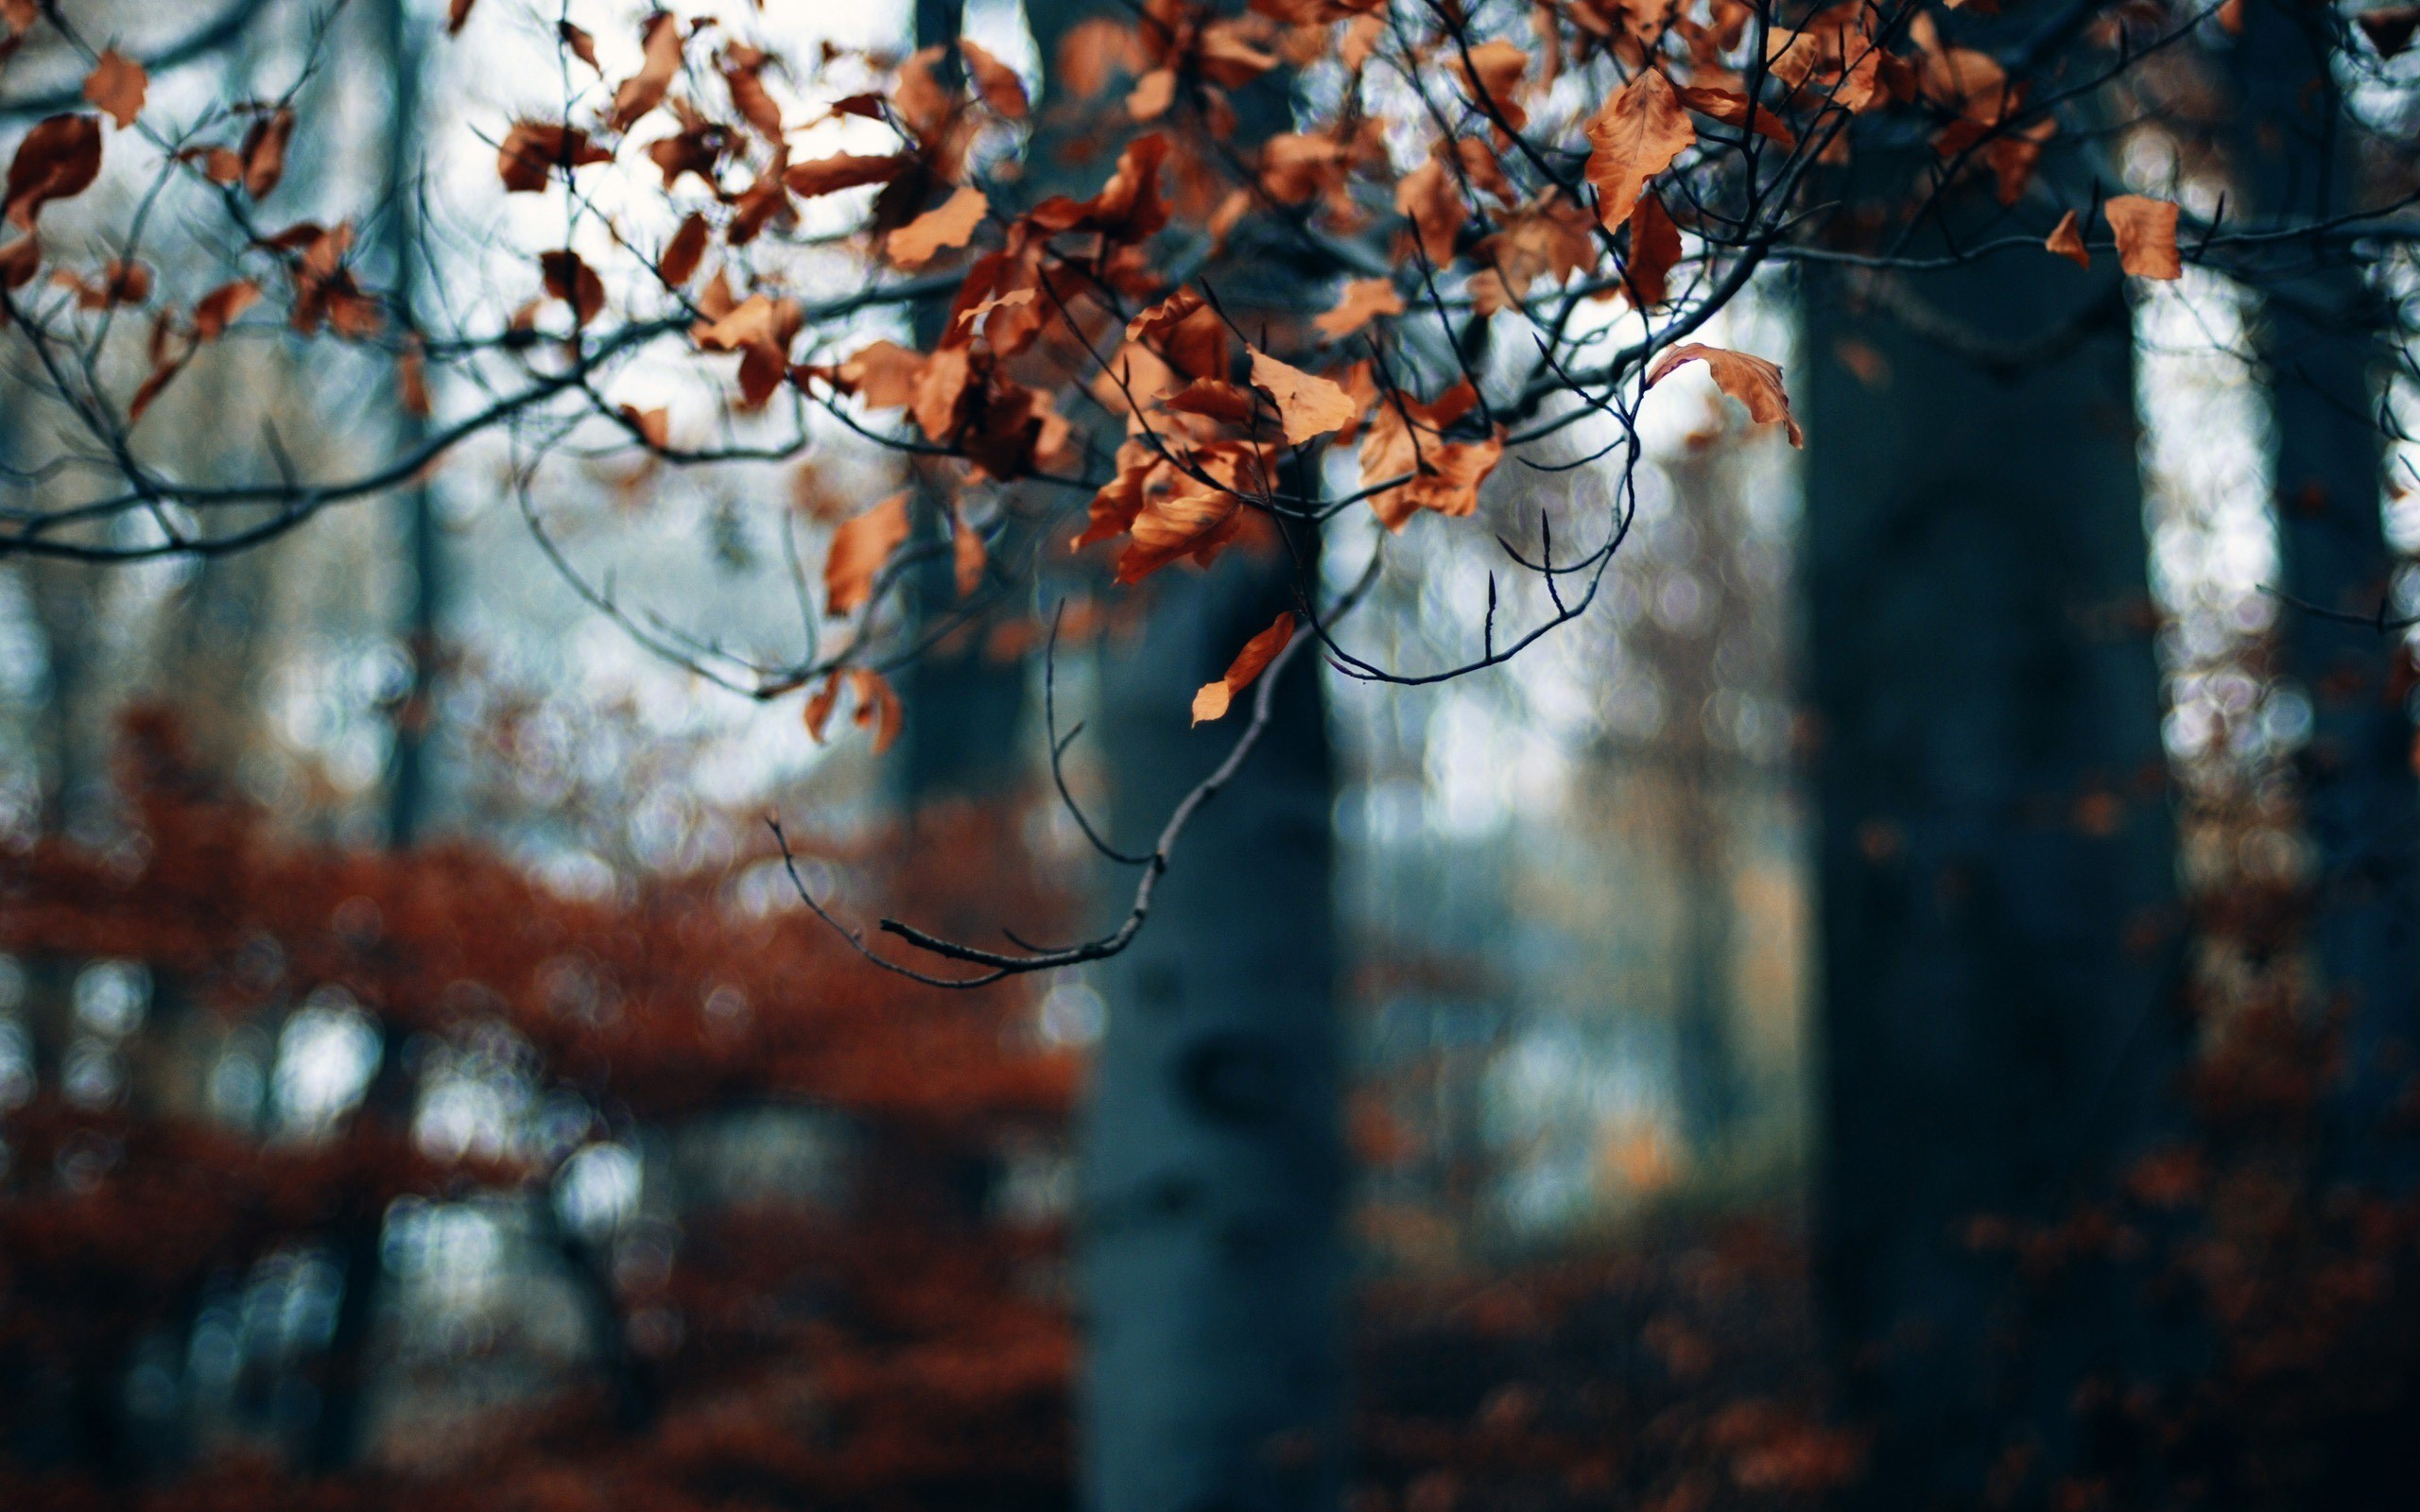 Gloomy Fall Wallpaper Autumn Forest Trees Branches Dry Leaves Photo Wallpaper